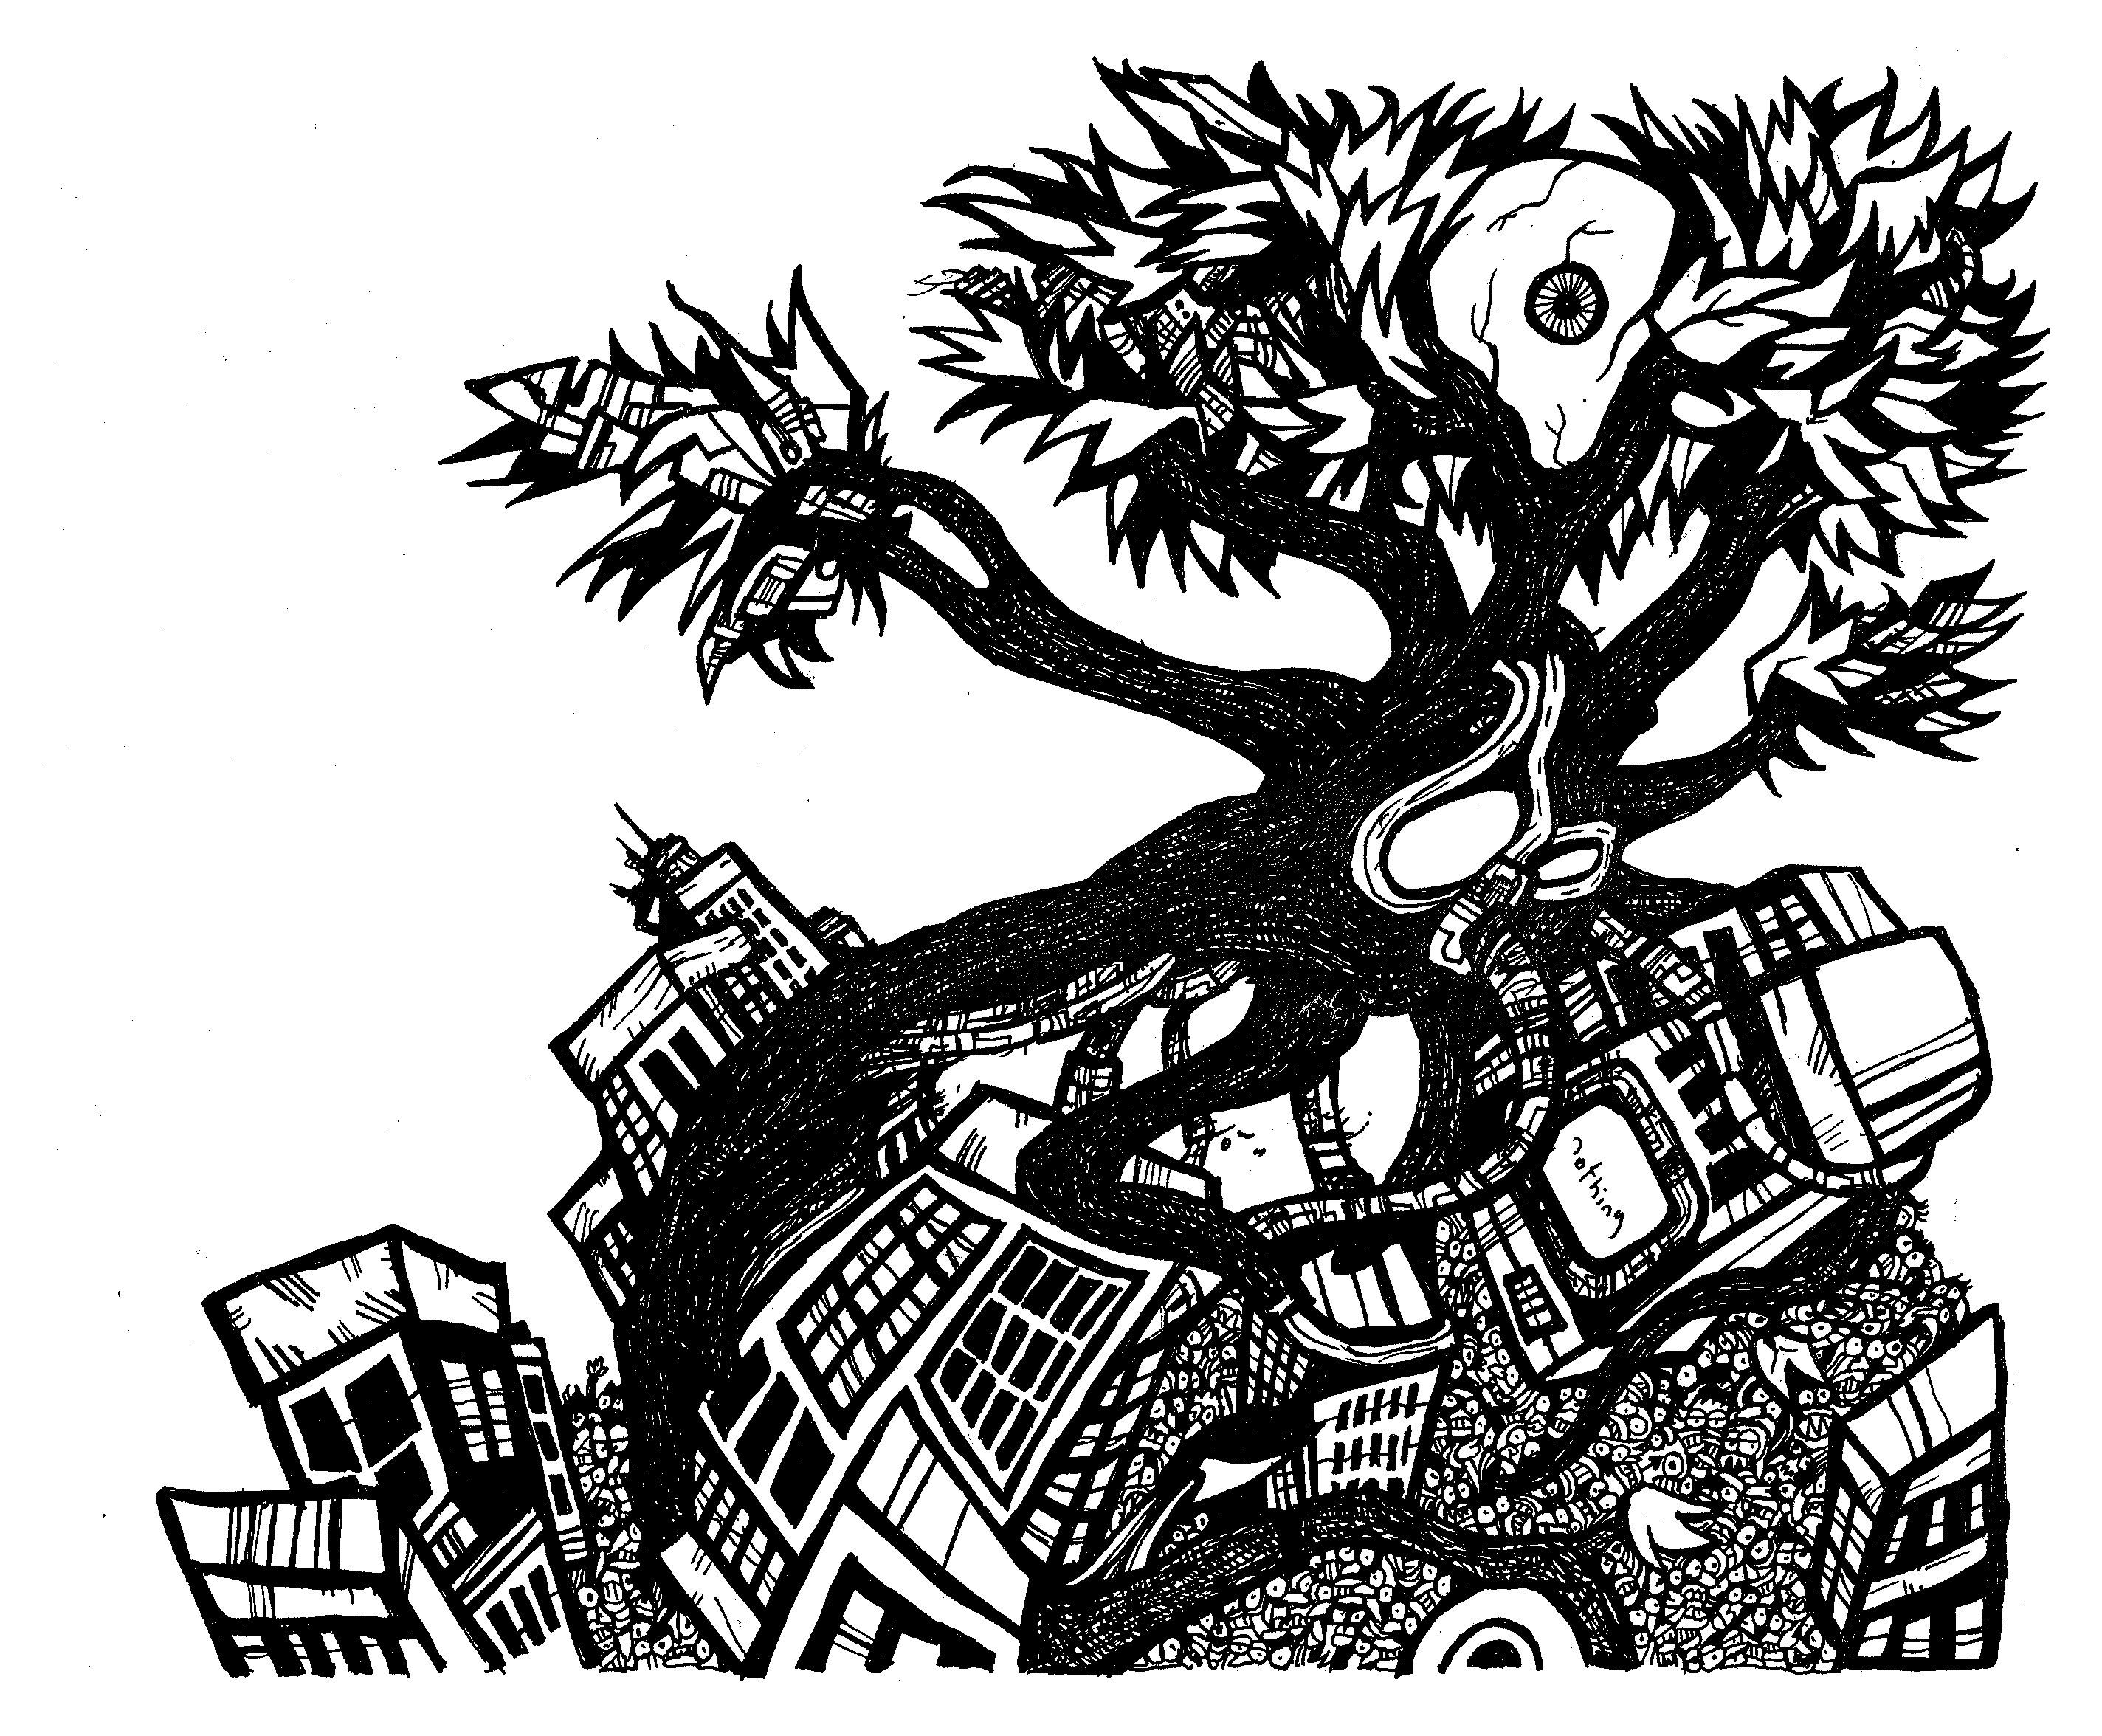 2848x2352 Trees Amp Cities New Comic Book Drawings Heyapathy Surreal Comics